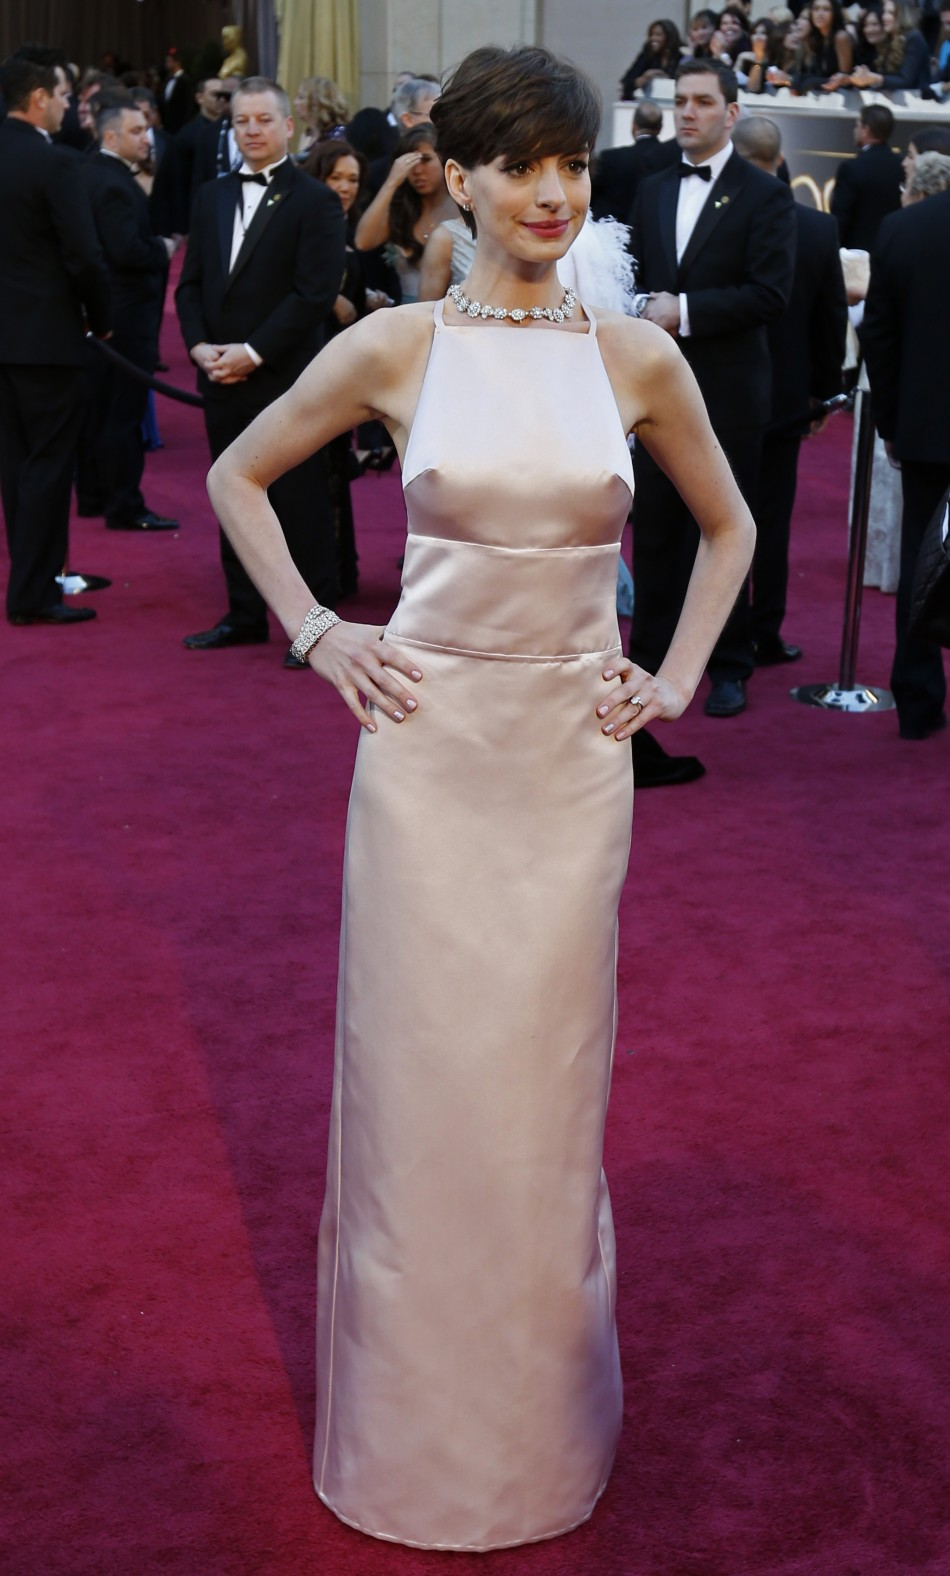 oscars 2013 worst dressed celebrities on academy awards